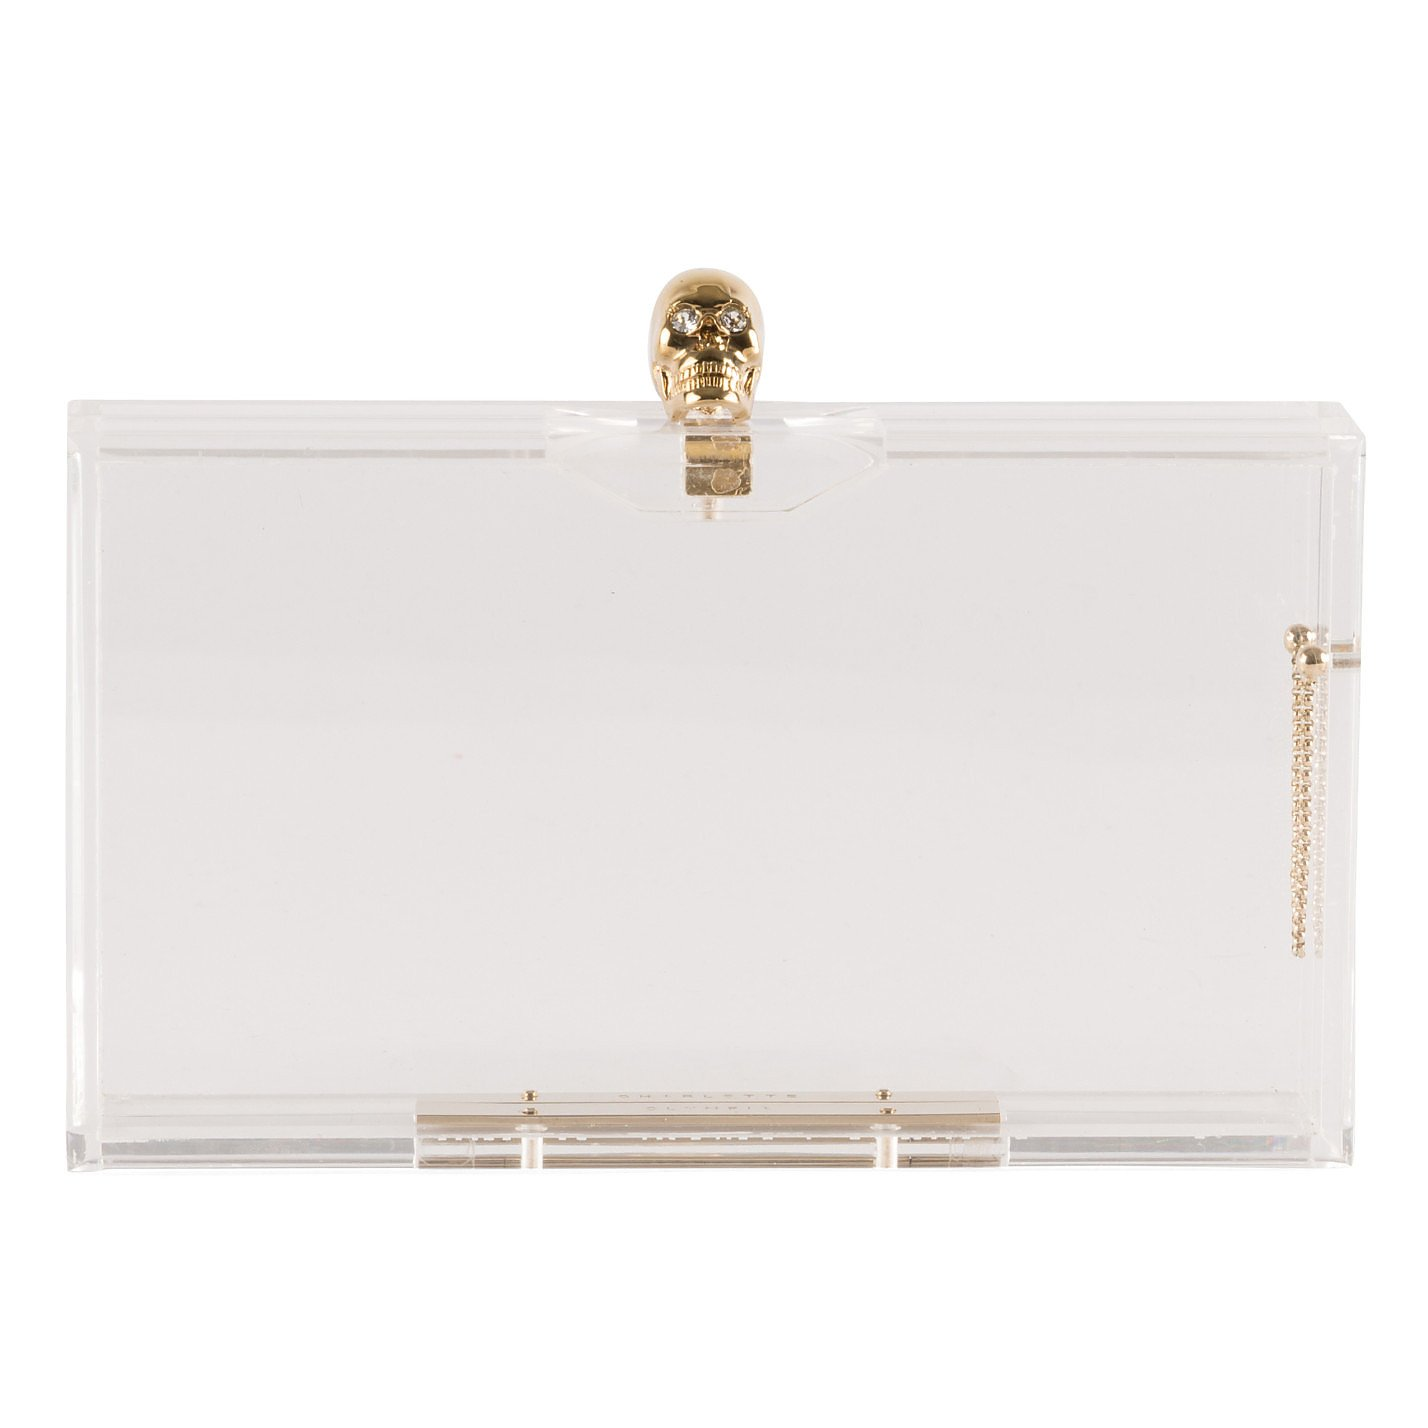 Charlotte Olympia Clear Perspex Skull Clutch